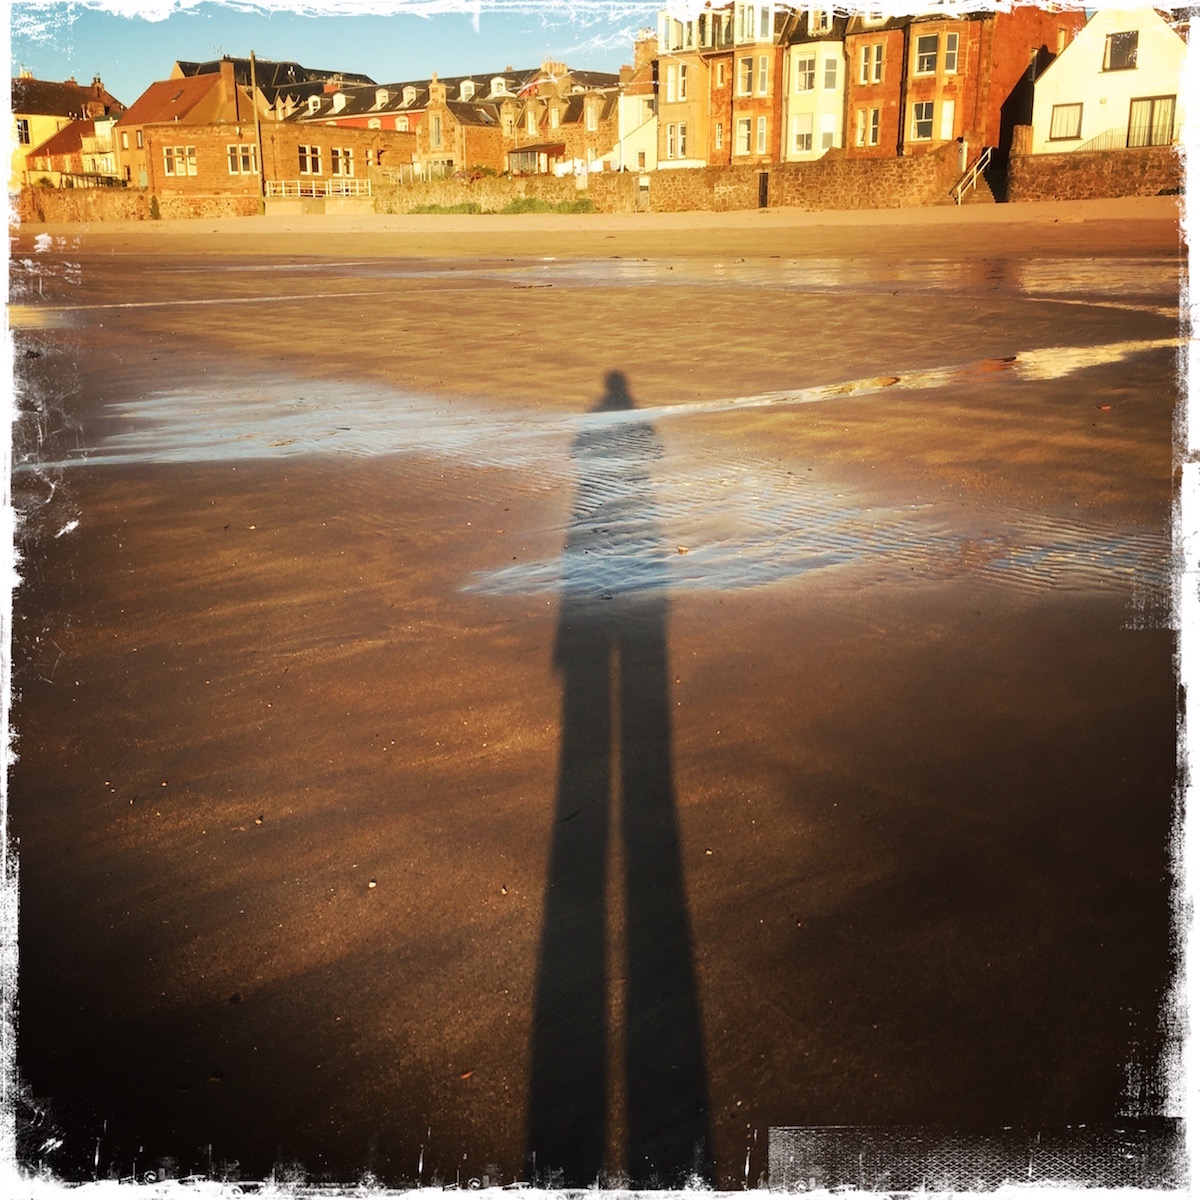 Beach shadow. North Berwick, Scotland. Photo by Barbara Sinclair